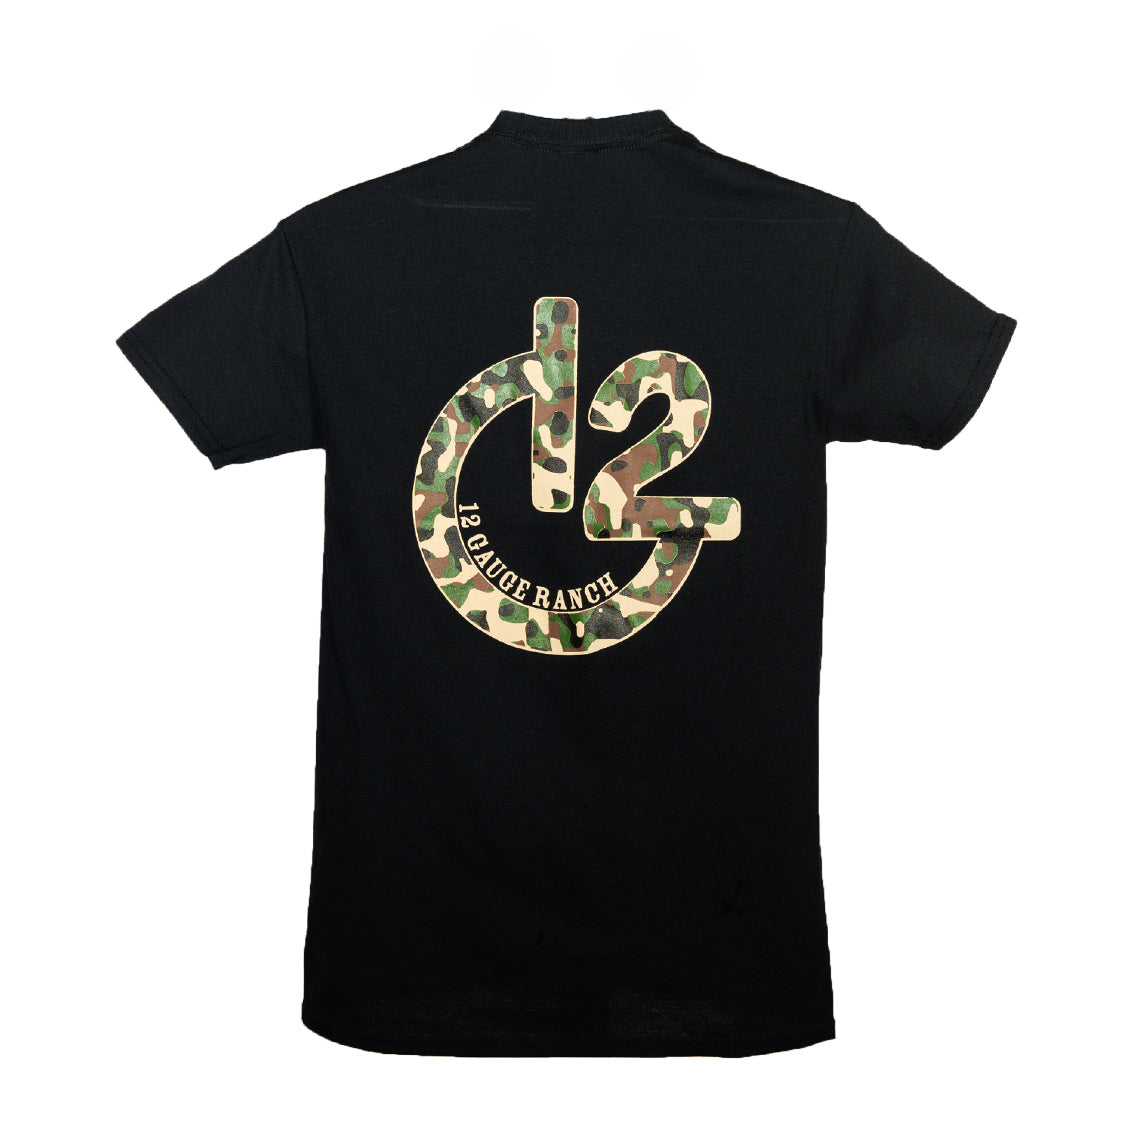 12 Gauge Ranch Black with Camo Short Sleeve T-Shirt, Apparel, 12 Gauge Ranch, 12 Gauge Ranch Ranch  12 Gauge Ranch